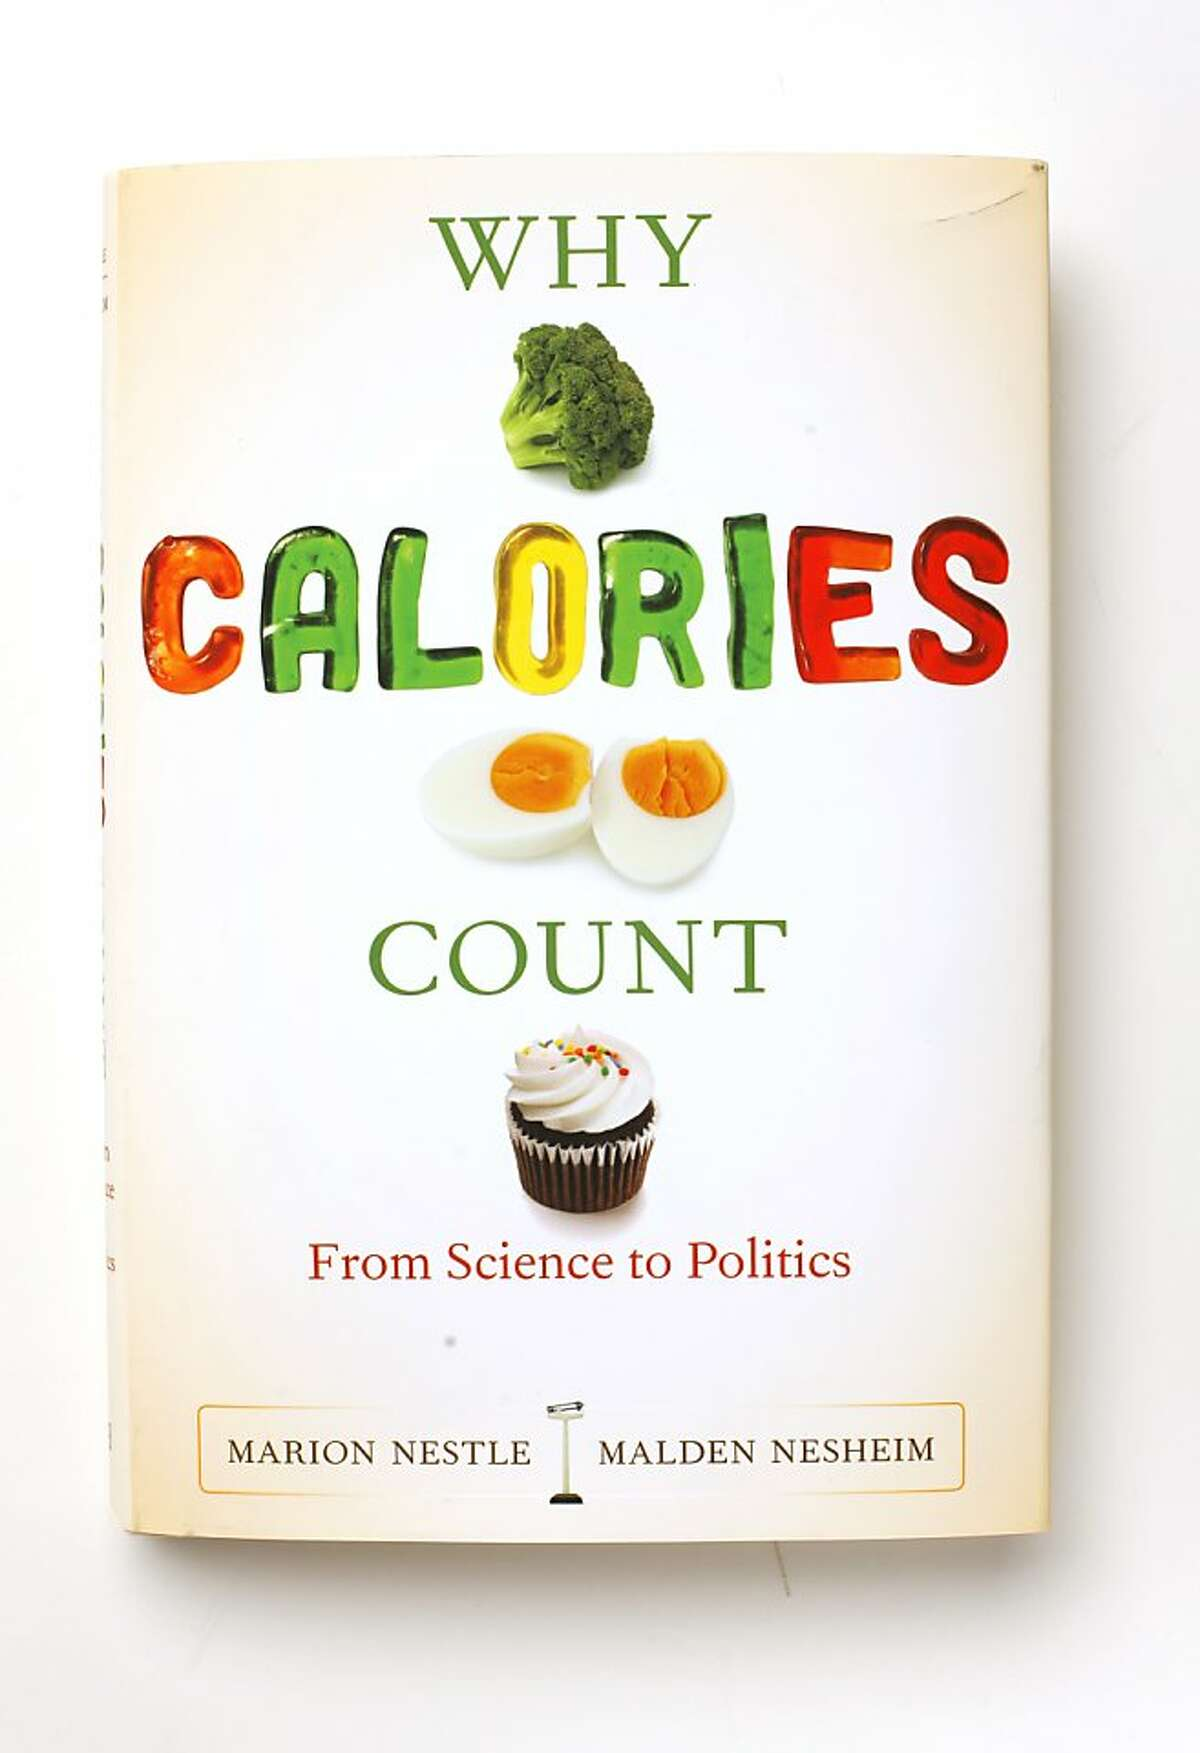 """""""Why Calories Count,"""" by Marion Nestle as seen in San Francisco on March 14, 2011."""